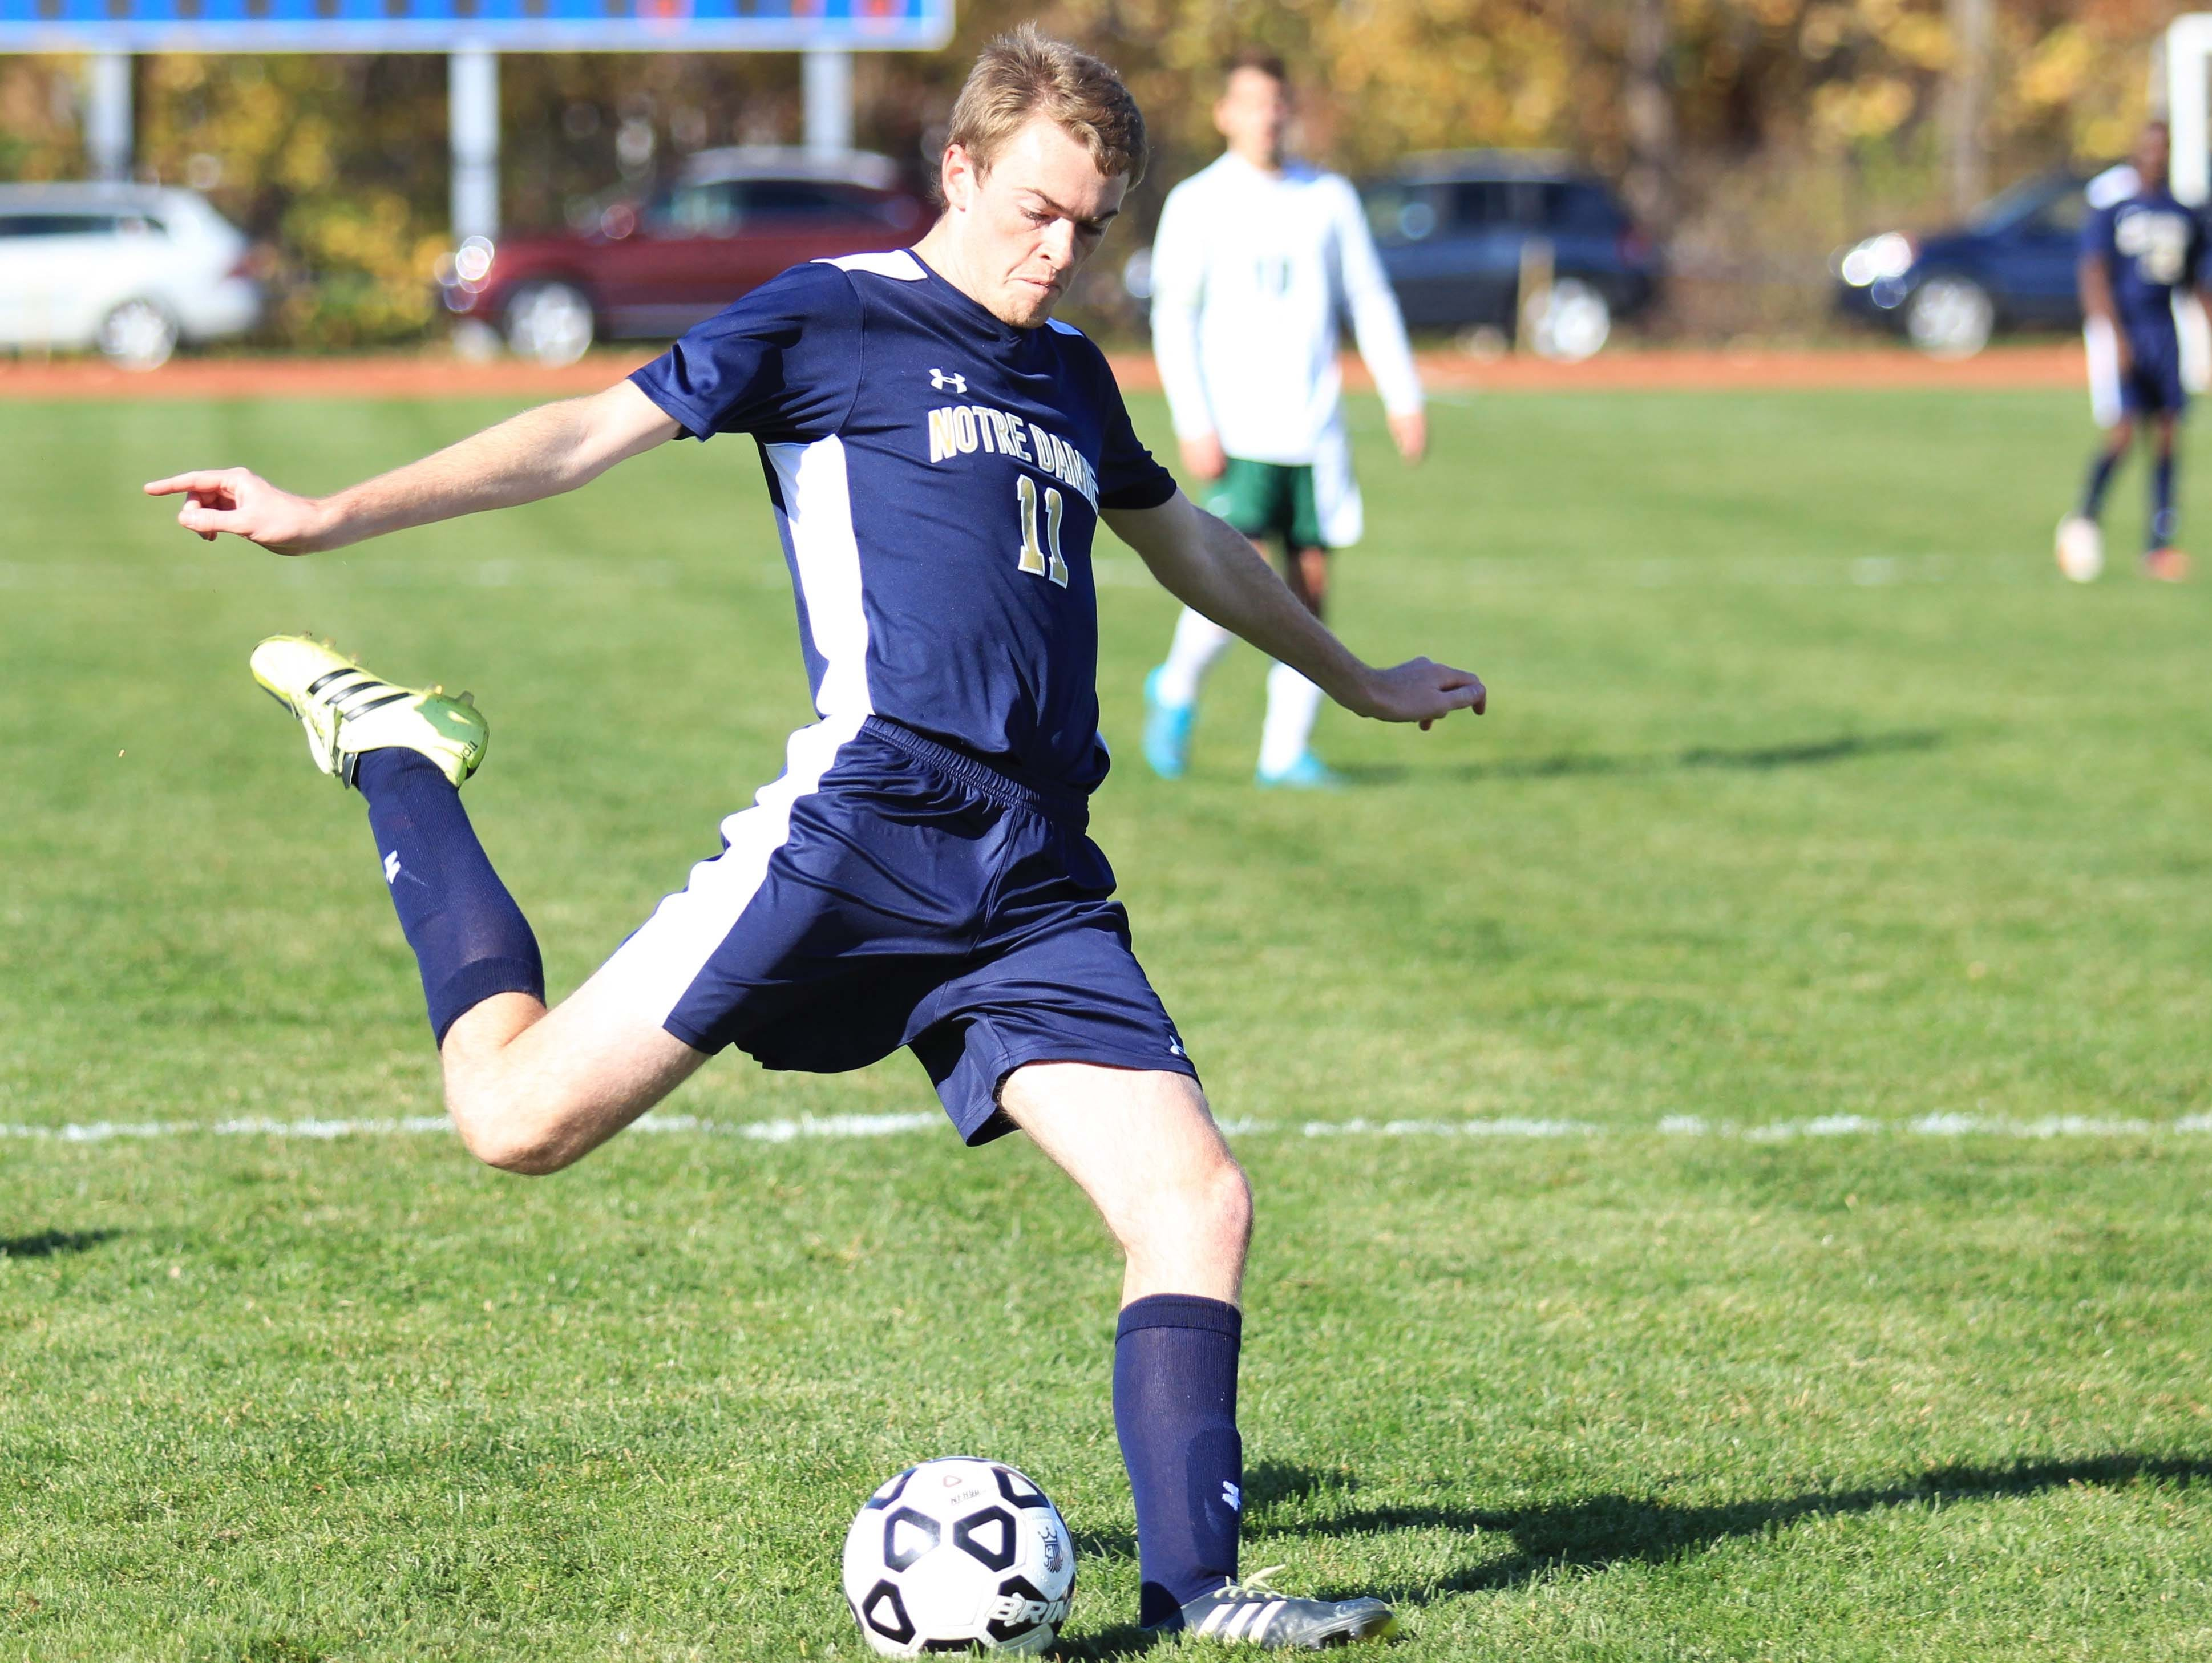 Notre Dame's Ryan Lanning takes a shot on goal during the NYSPHSAA Class C final in Middletown.